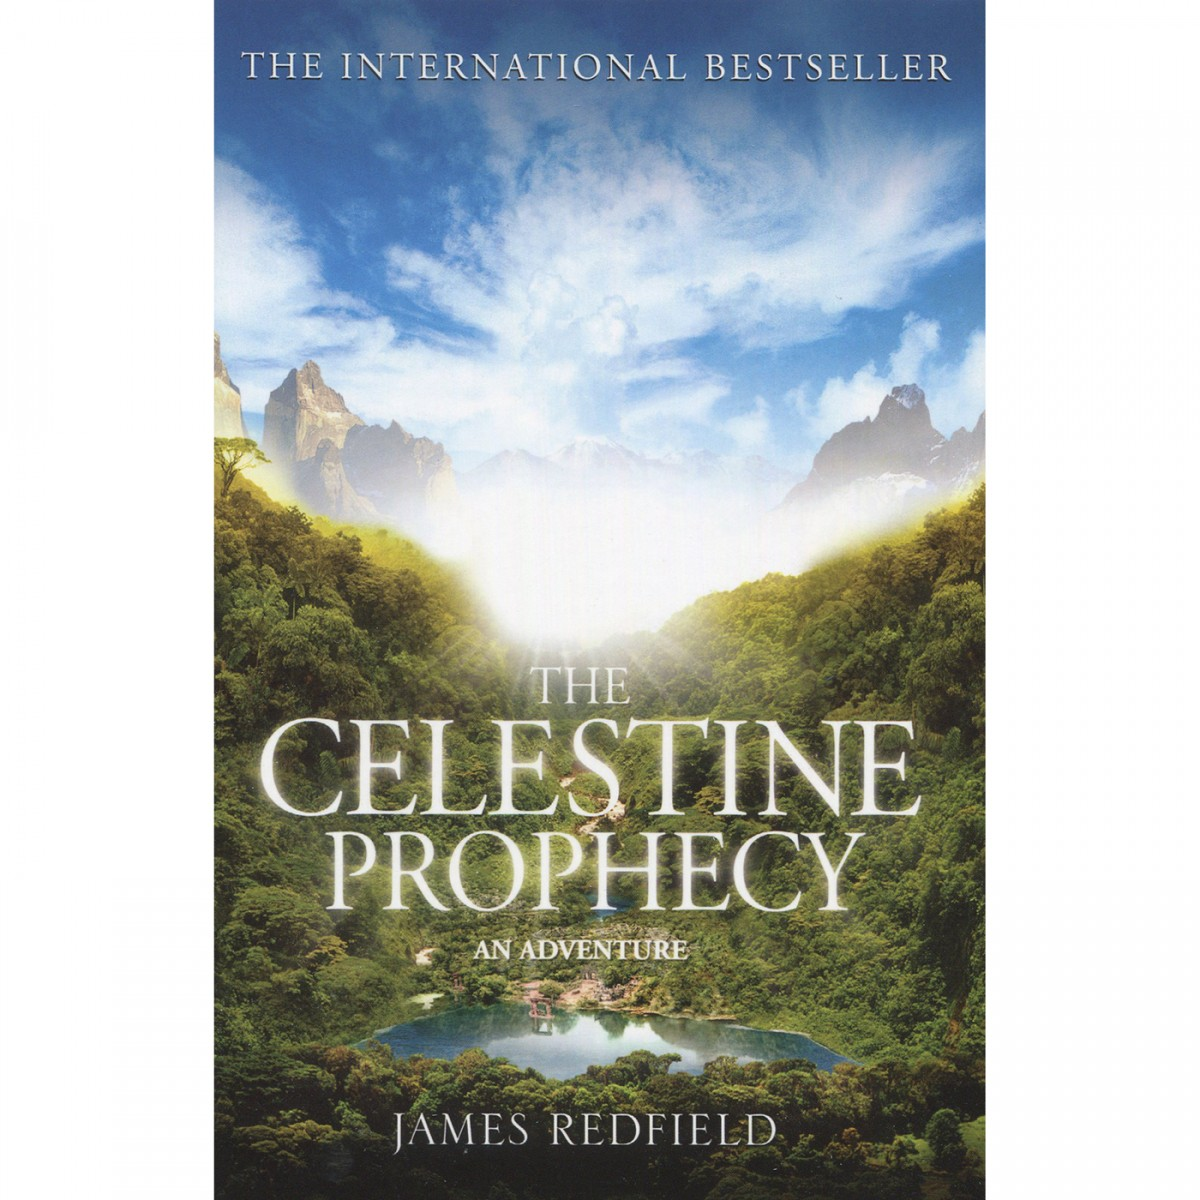 The Celestine Prophecy -James Redfield - This book looks at the world through the exchange of energy.It helps shift paradigms to encompass a bigger collective unconsciousness and how we are all connected.